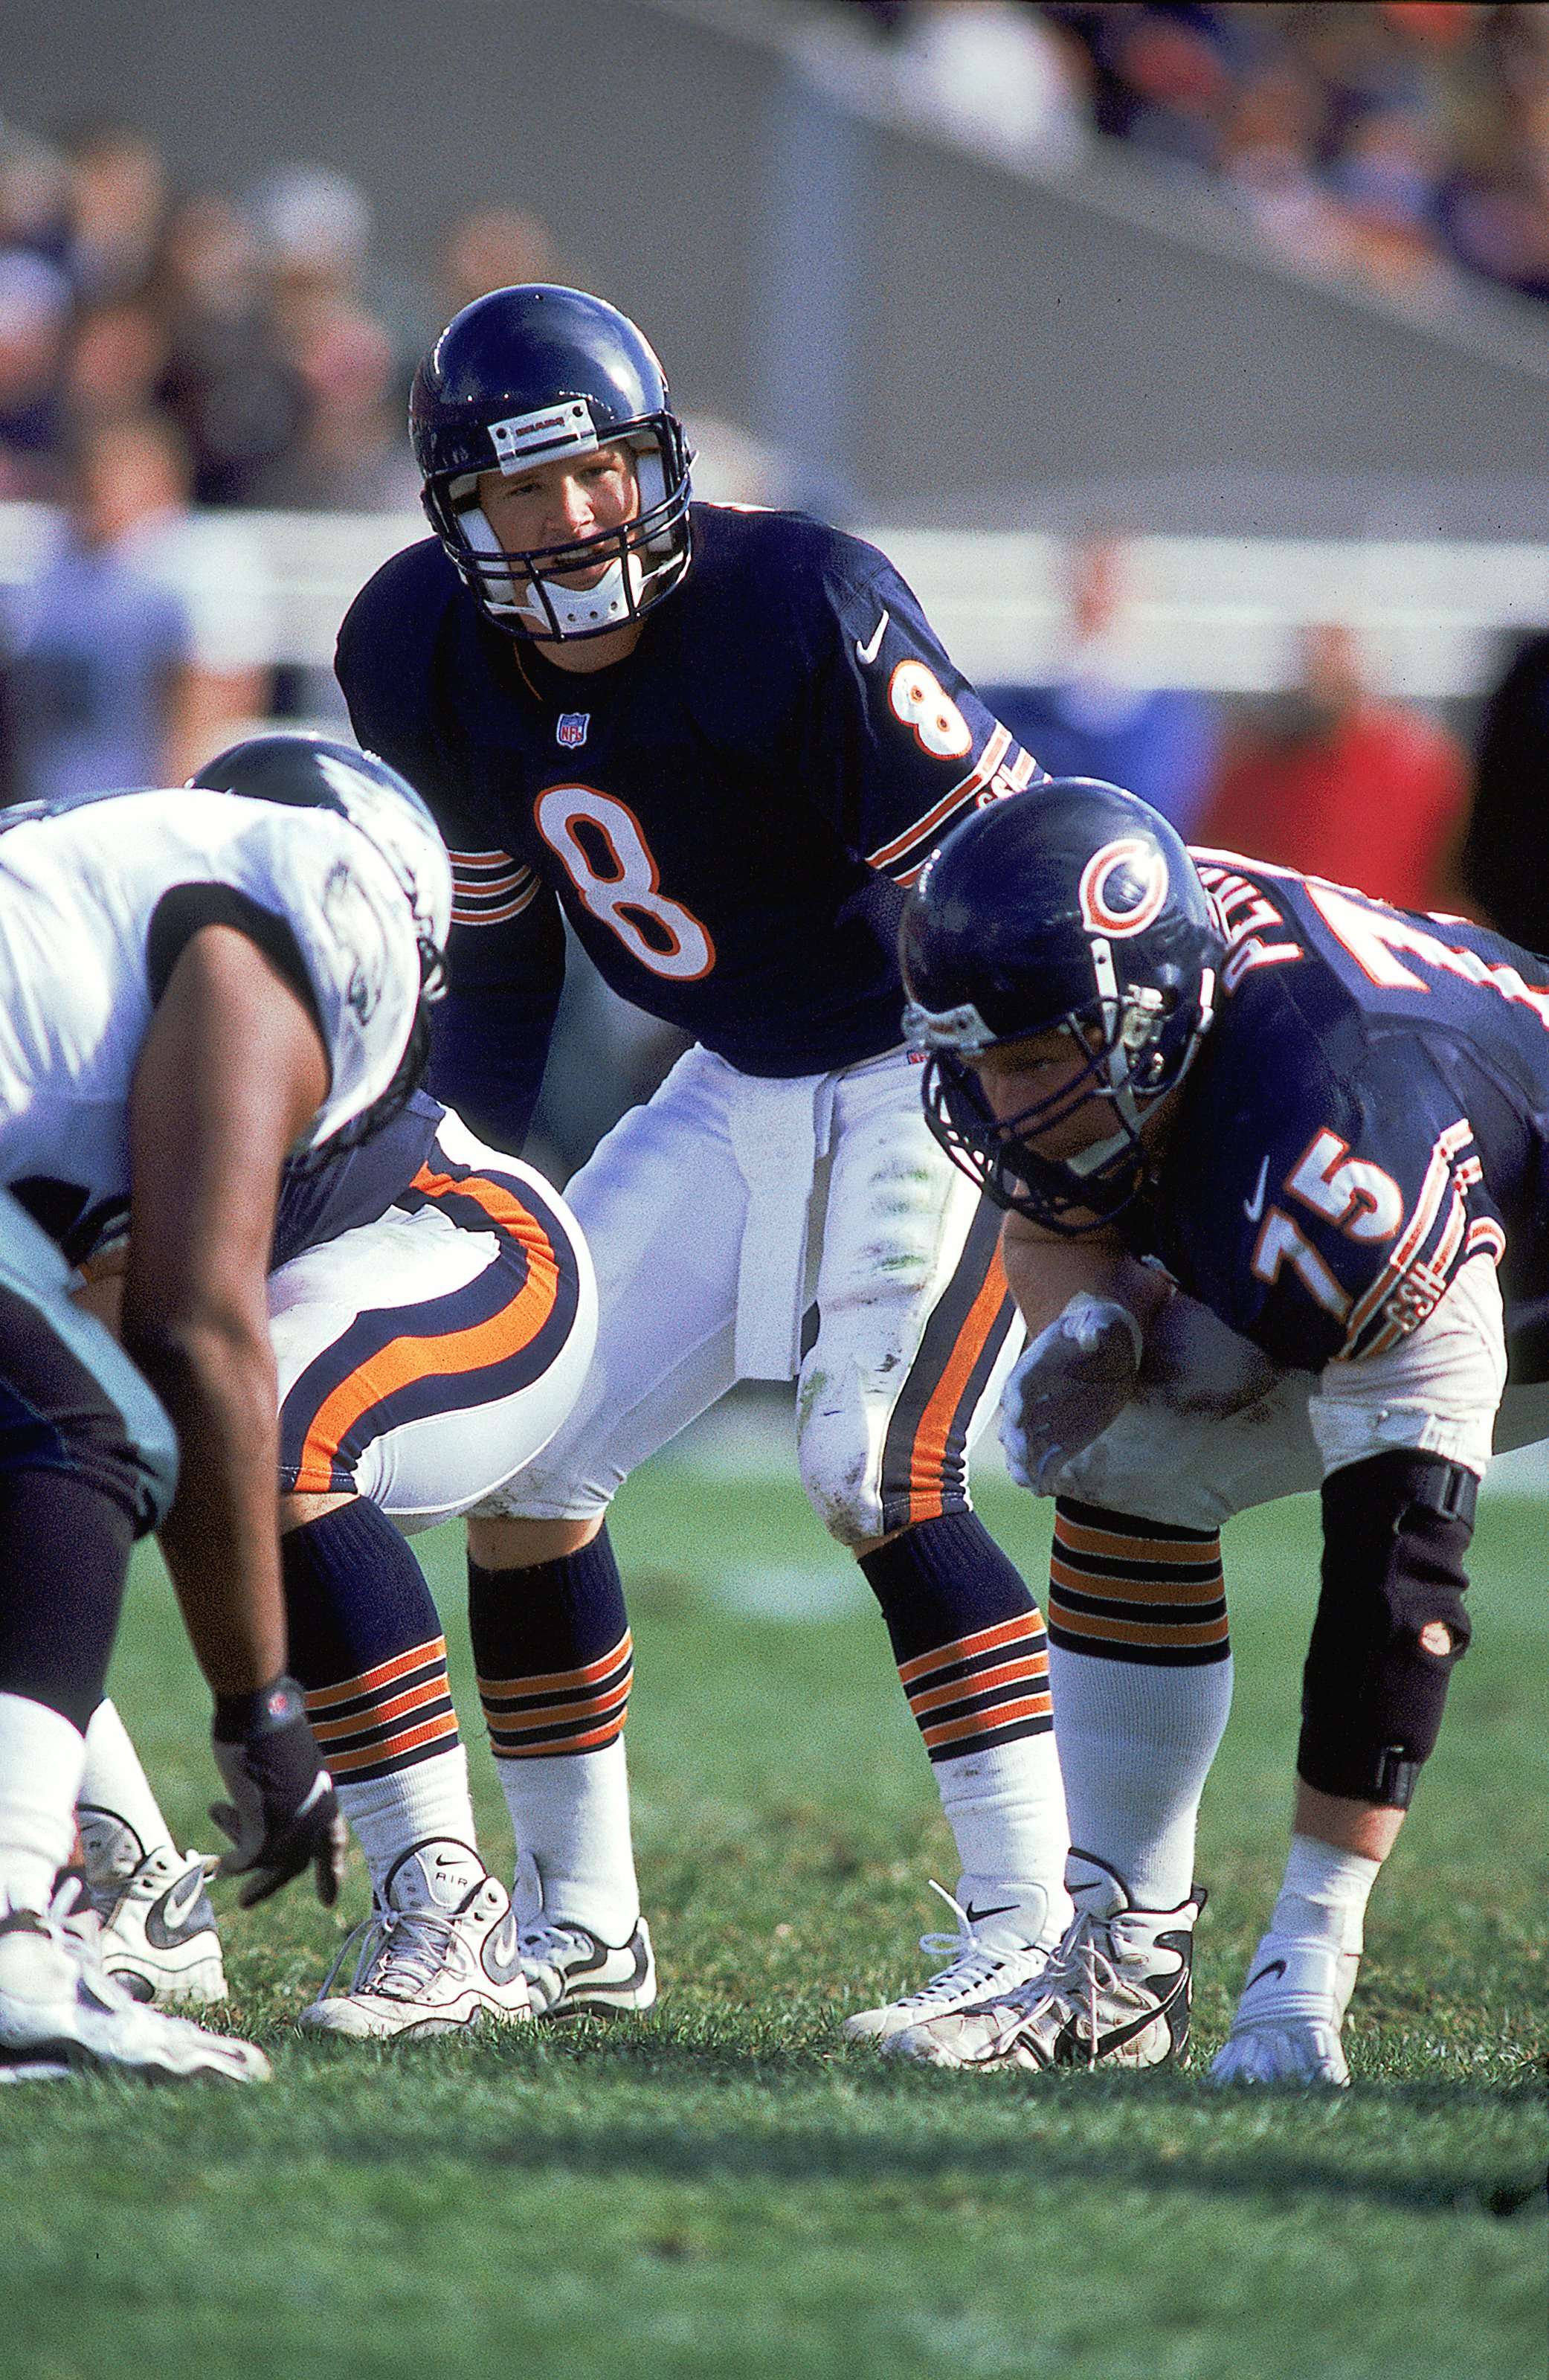 17 Oct 1999: Cade McNown #8 of the Chicago Bears calls the count from the line of scrimmage during the game against the Philadelphia Eagles at Soldier Field in Chicago, Illinois. The Eagles defeated the Bears 20-16. Mandatory Credit: Mark Lyons  /Allsport